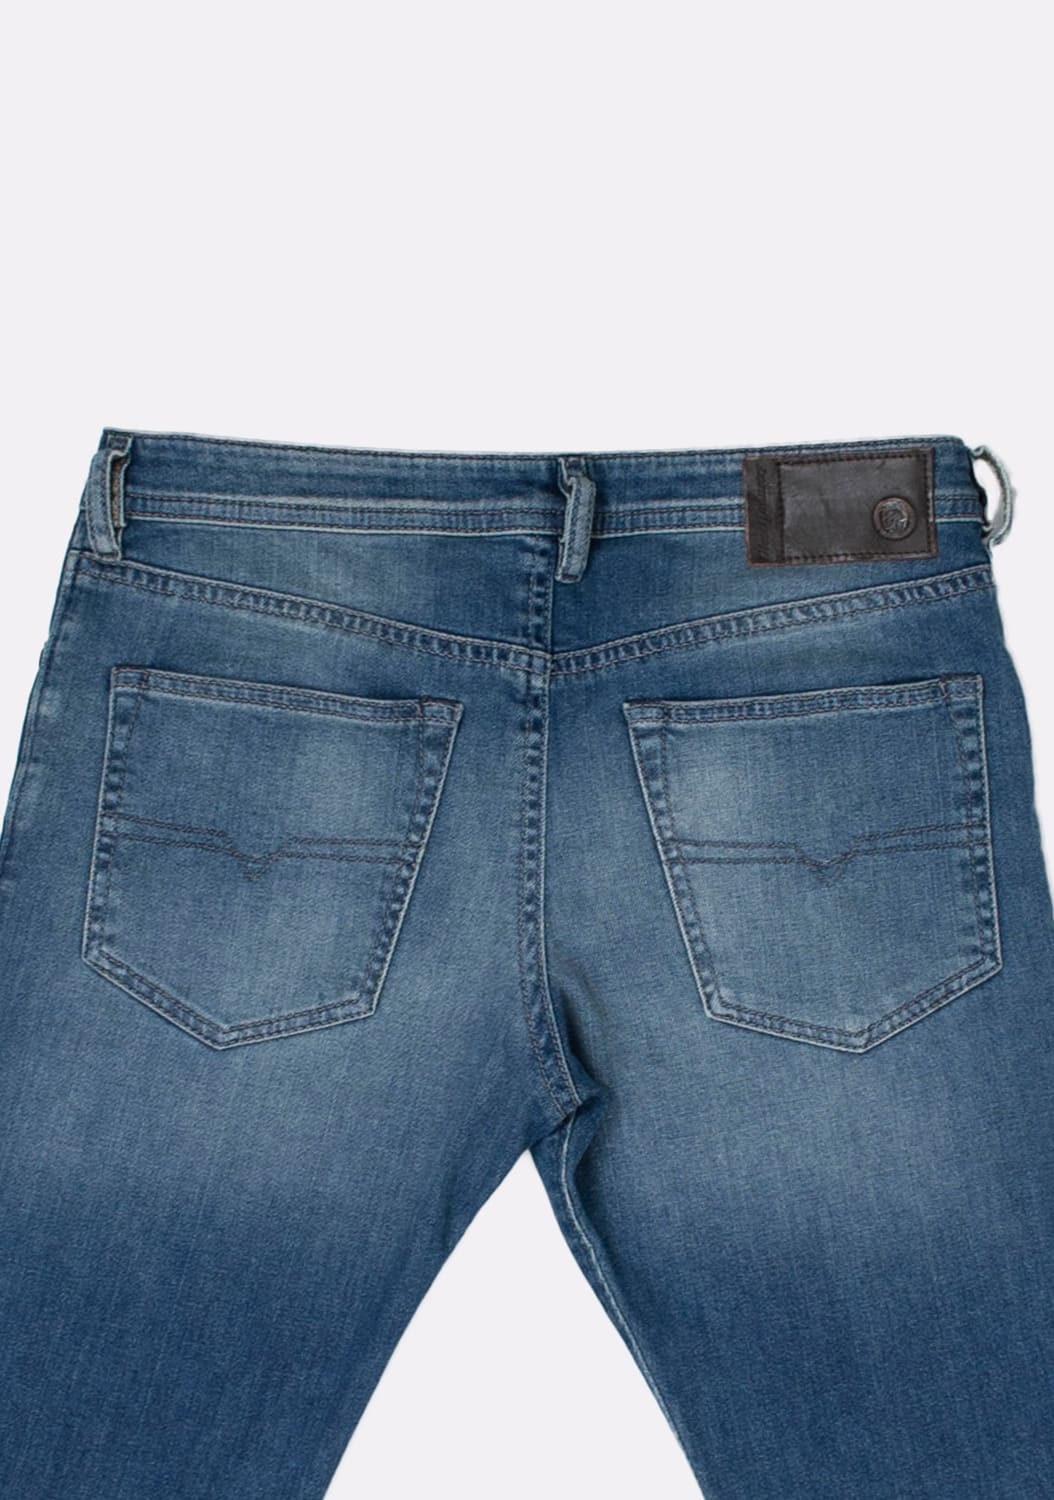 Diesel-Buster-Regular-Slim-Tappered-0669C-Stretch-30-32-melyni-urocklt (6)